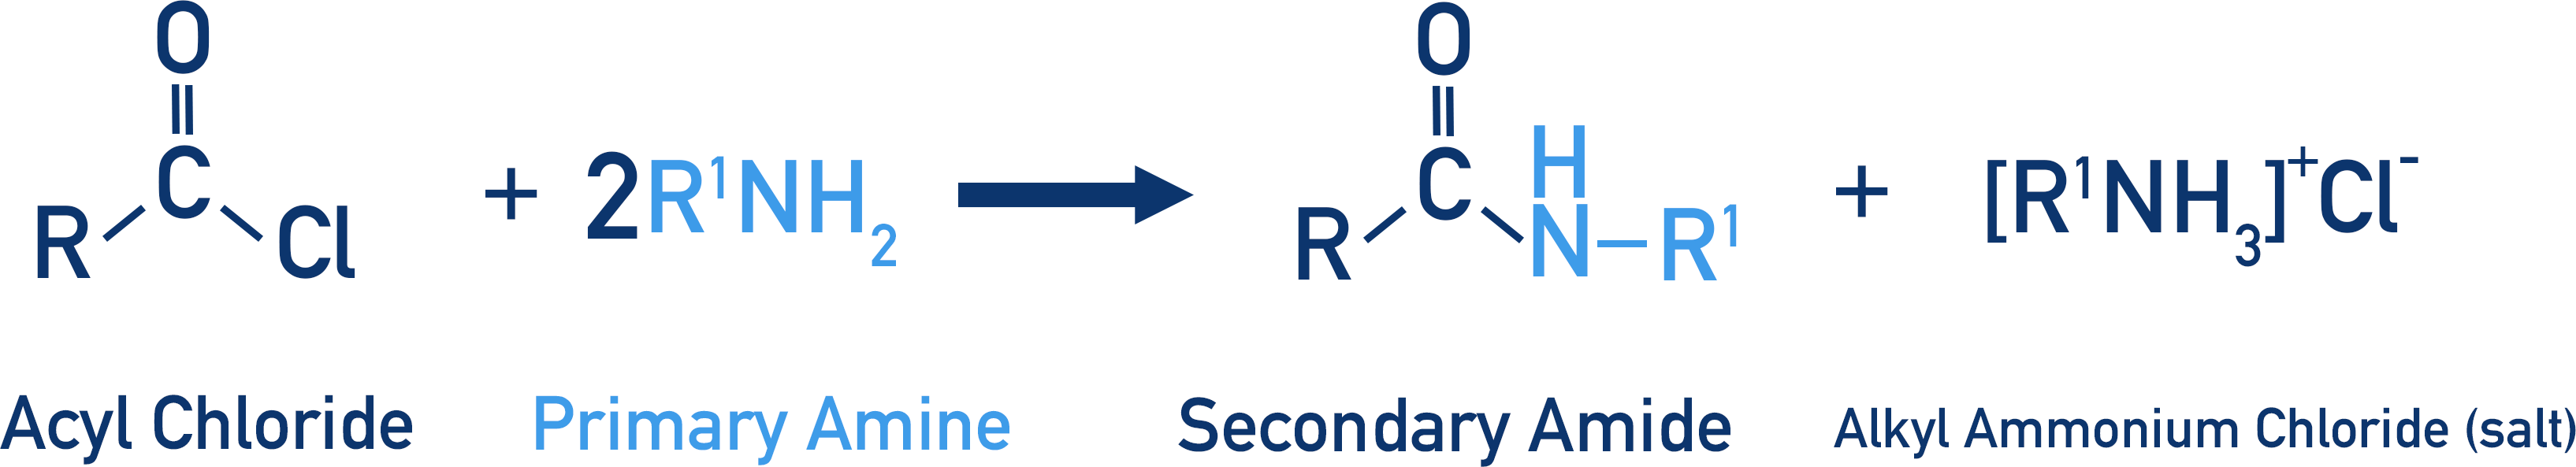 acyl chloride with primary amine to form secondary amide